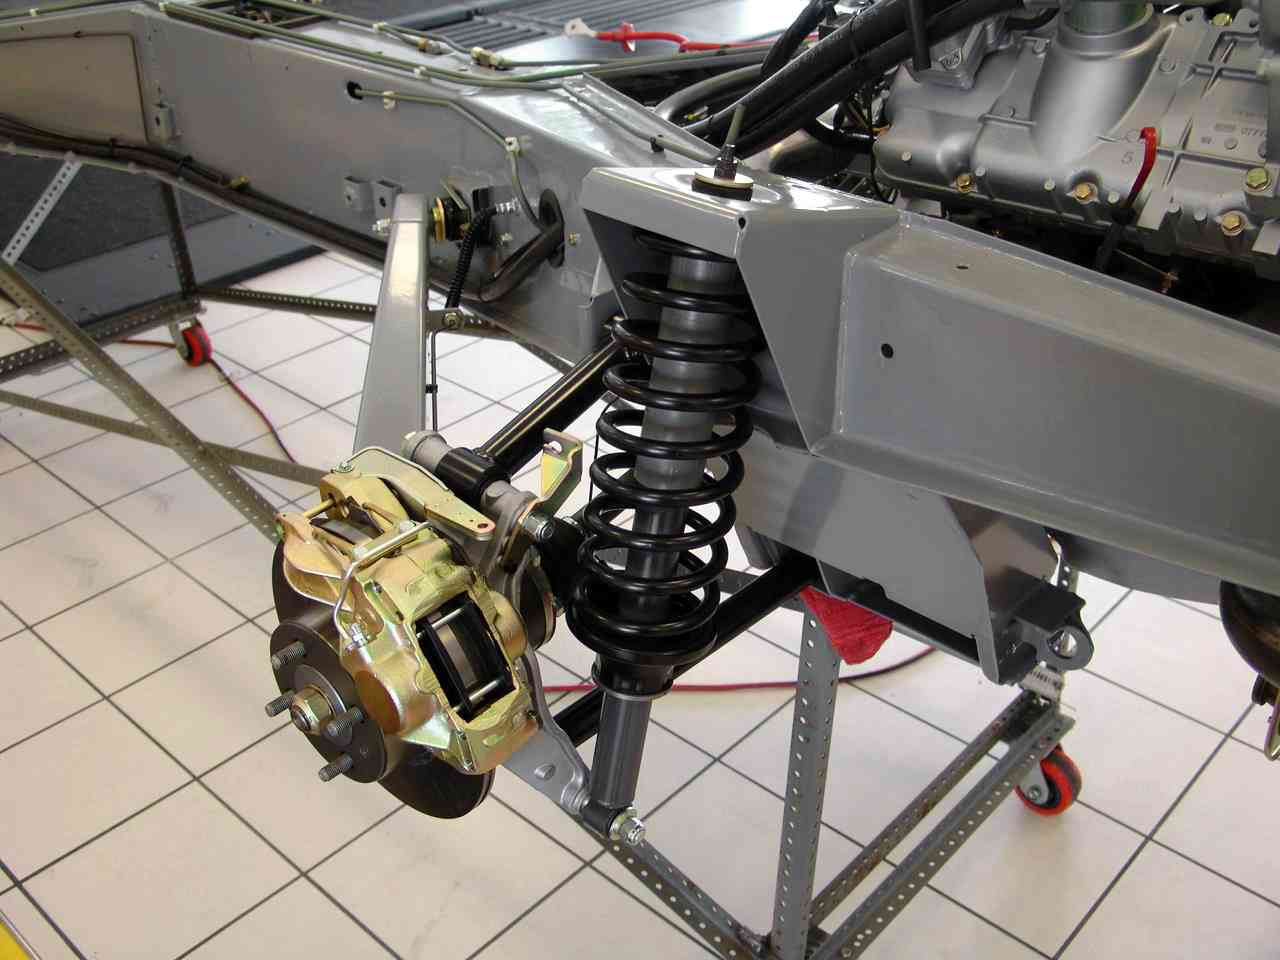 The Front Suspension in a Refurbished Delorean